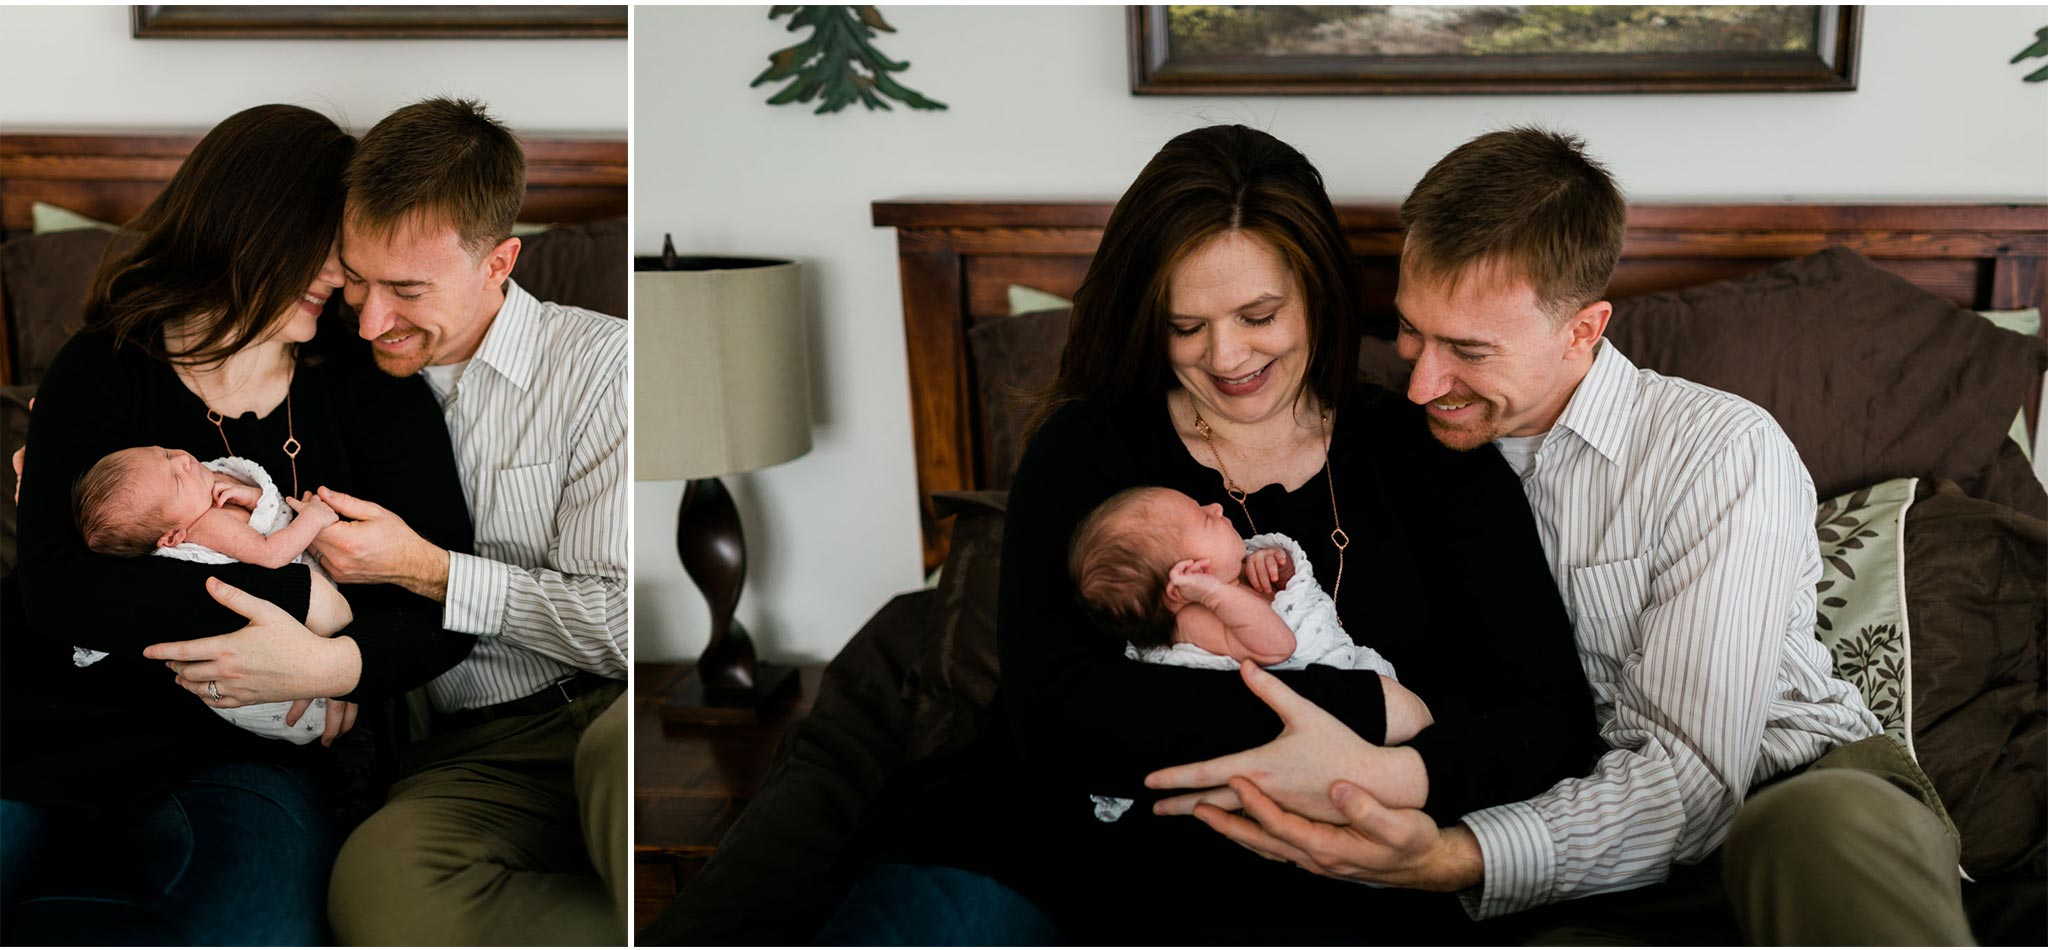 Candid lifestyle newborn session at home | Raleigh Newborn Photographer | By G. Lin Photography